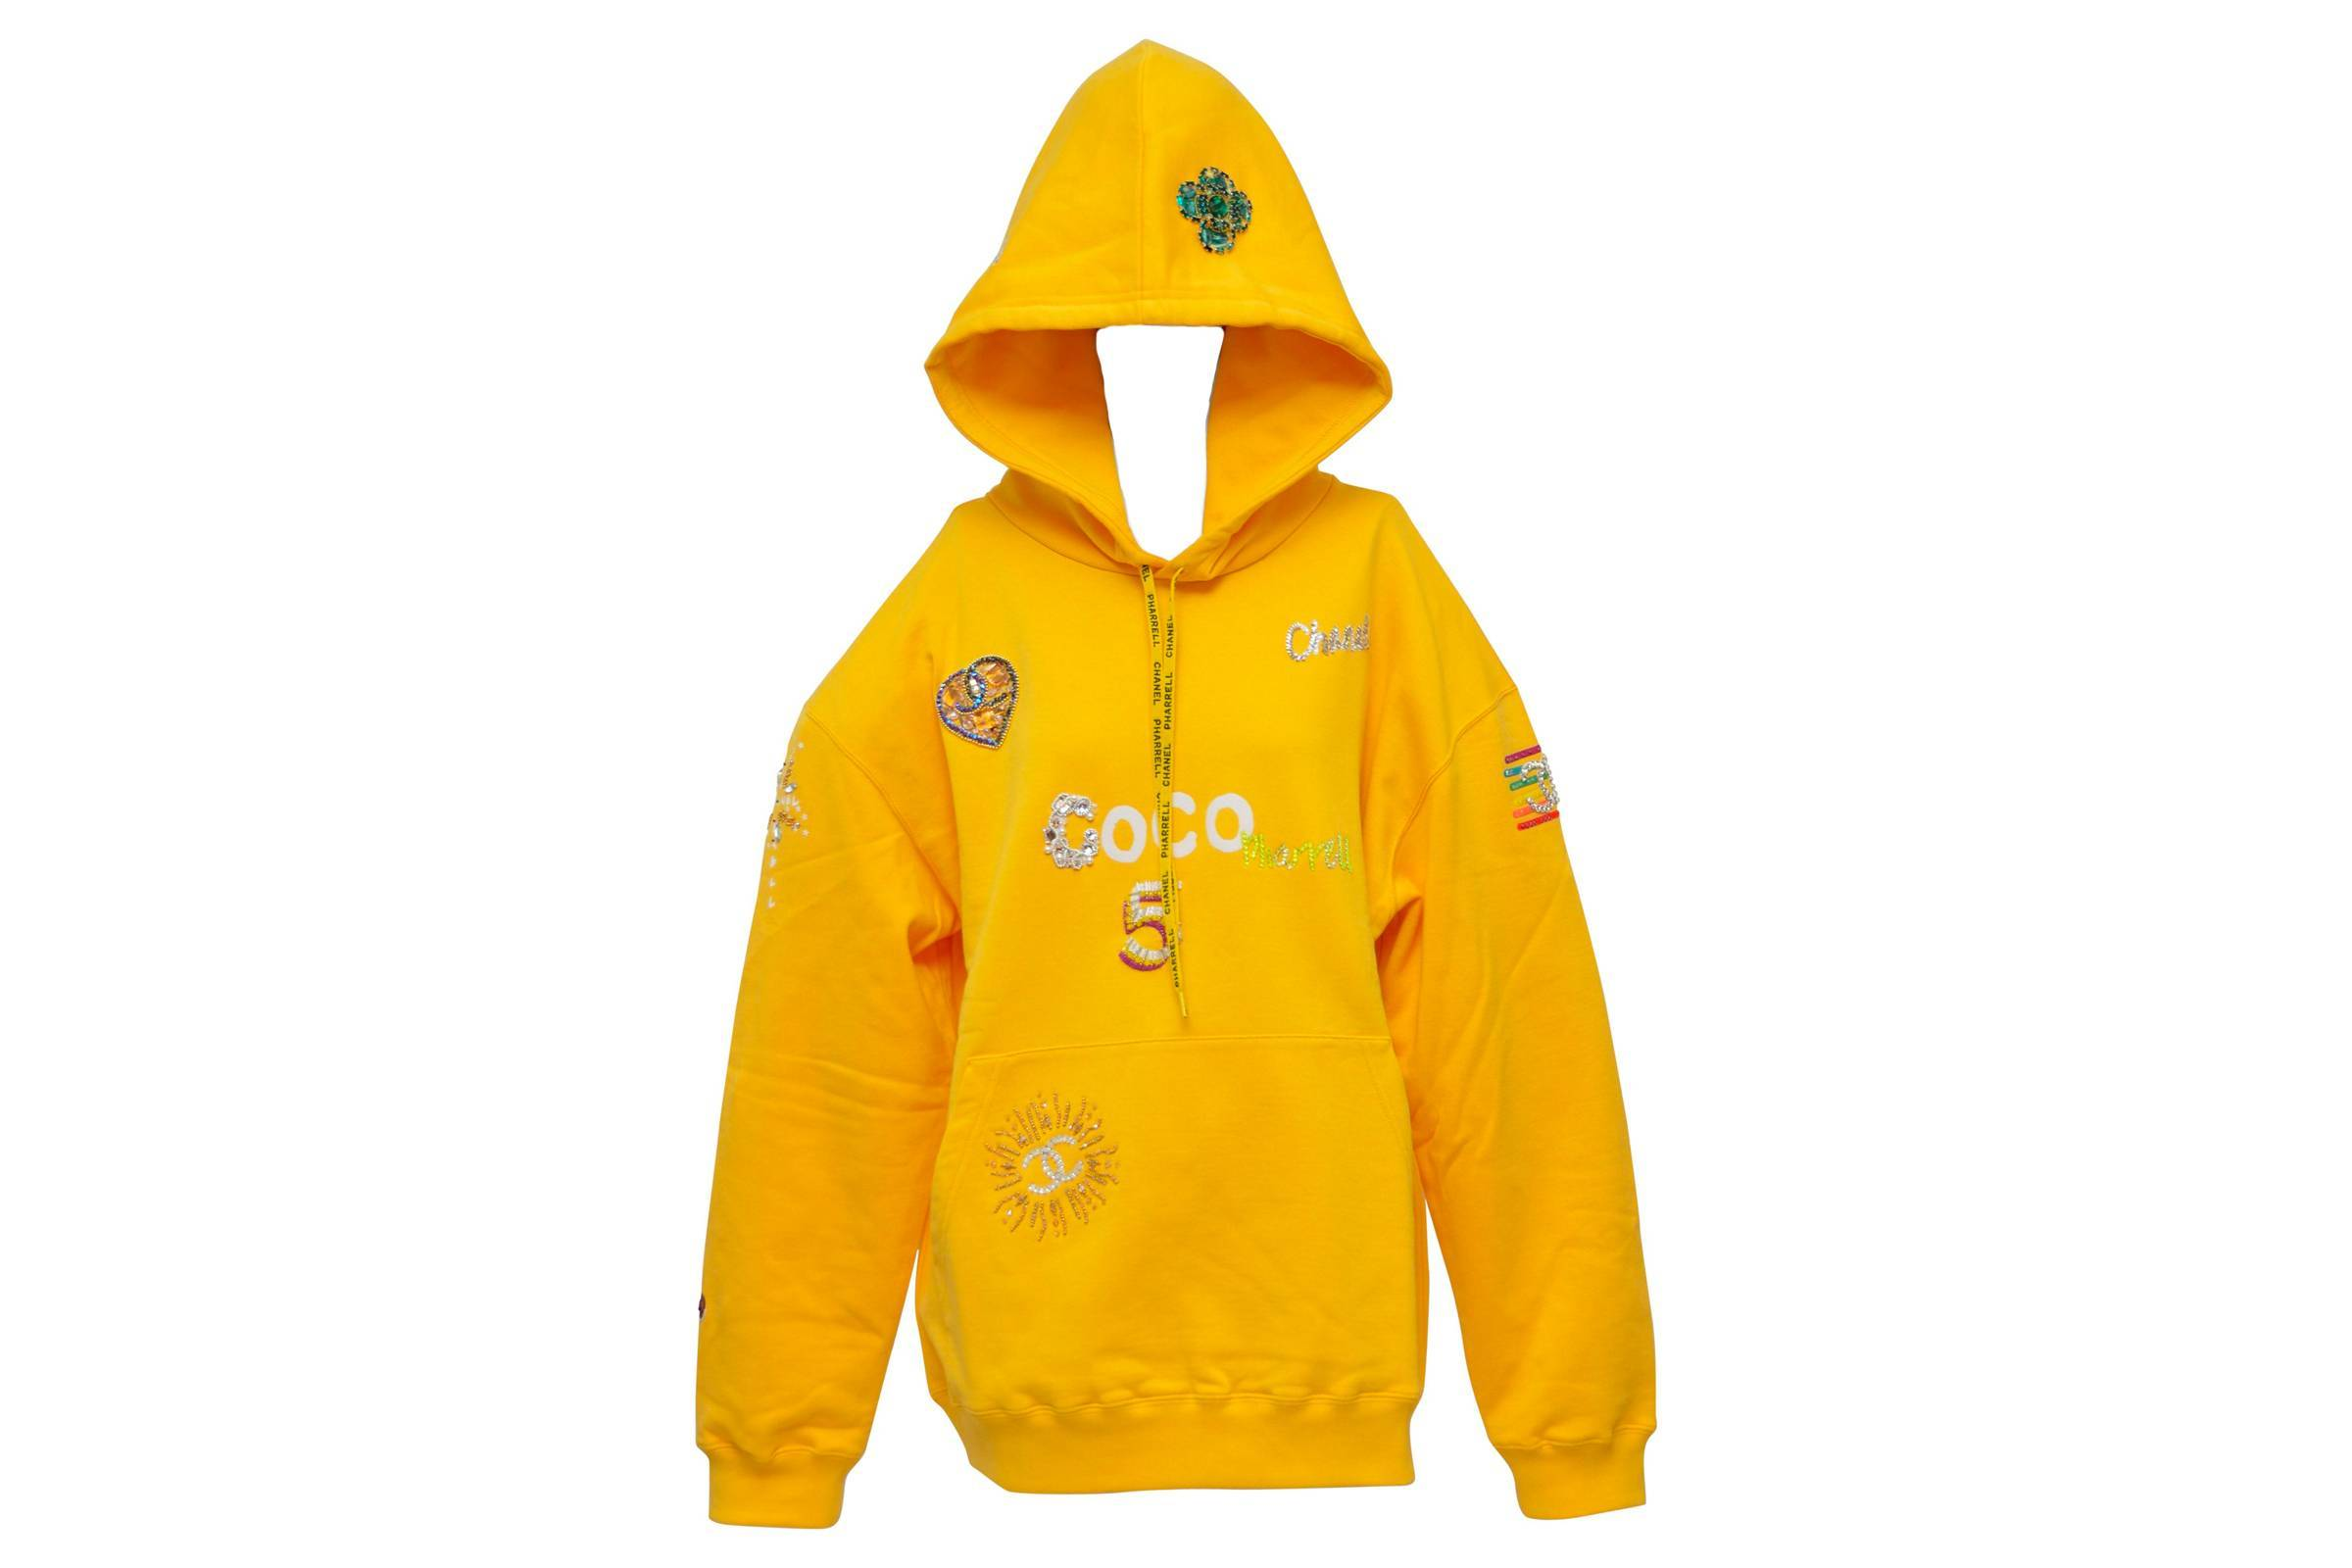 Pharrell x Chanel Yellow Hooded Sweatshirt